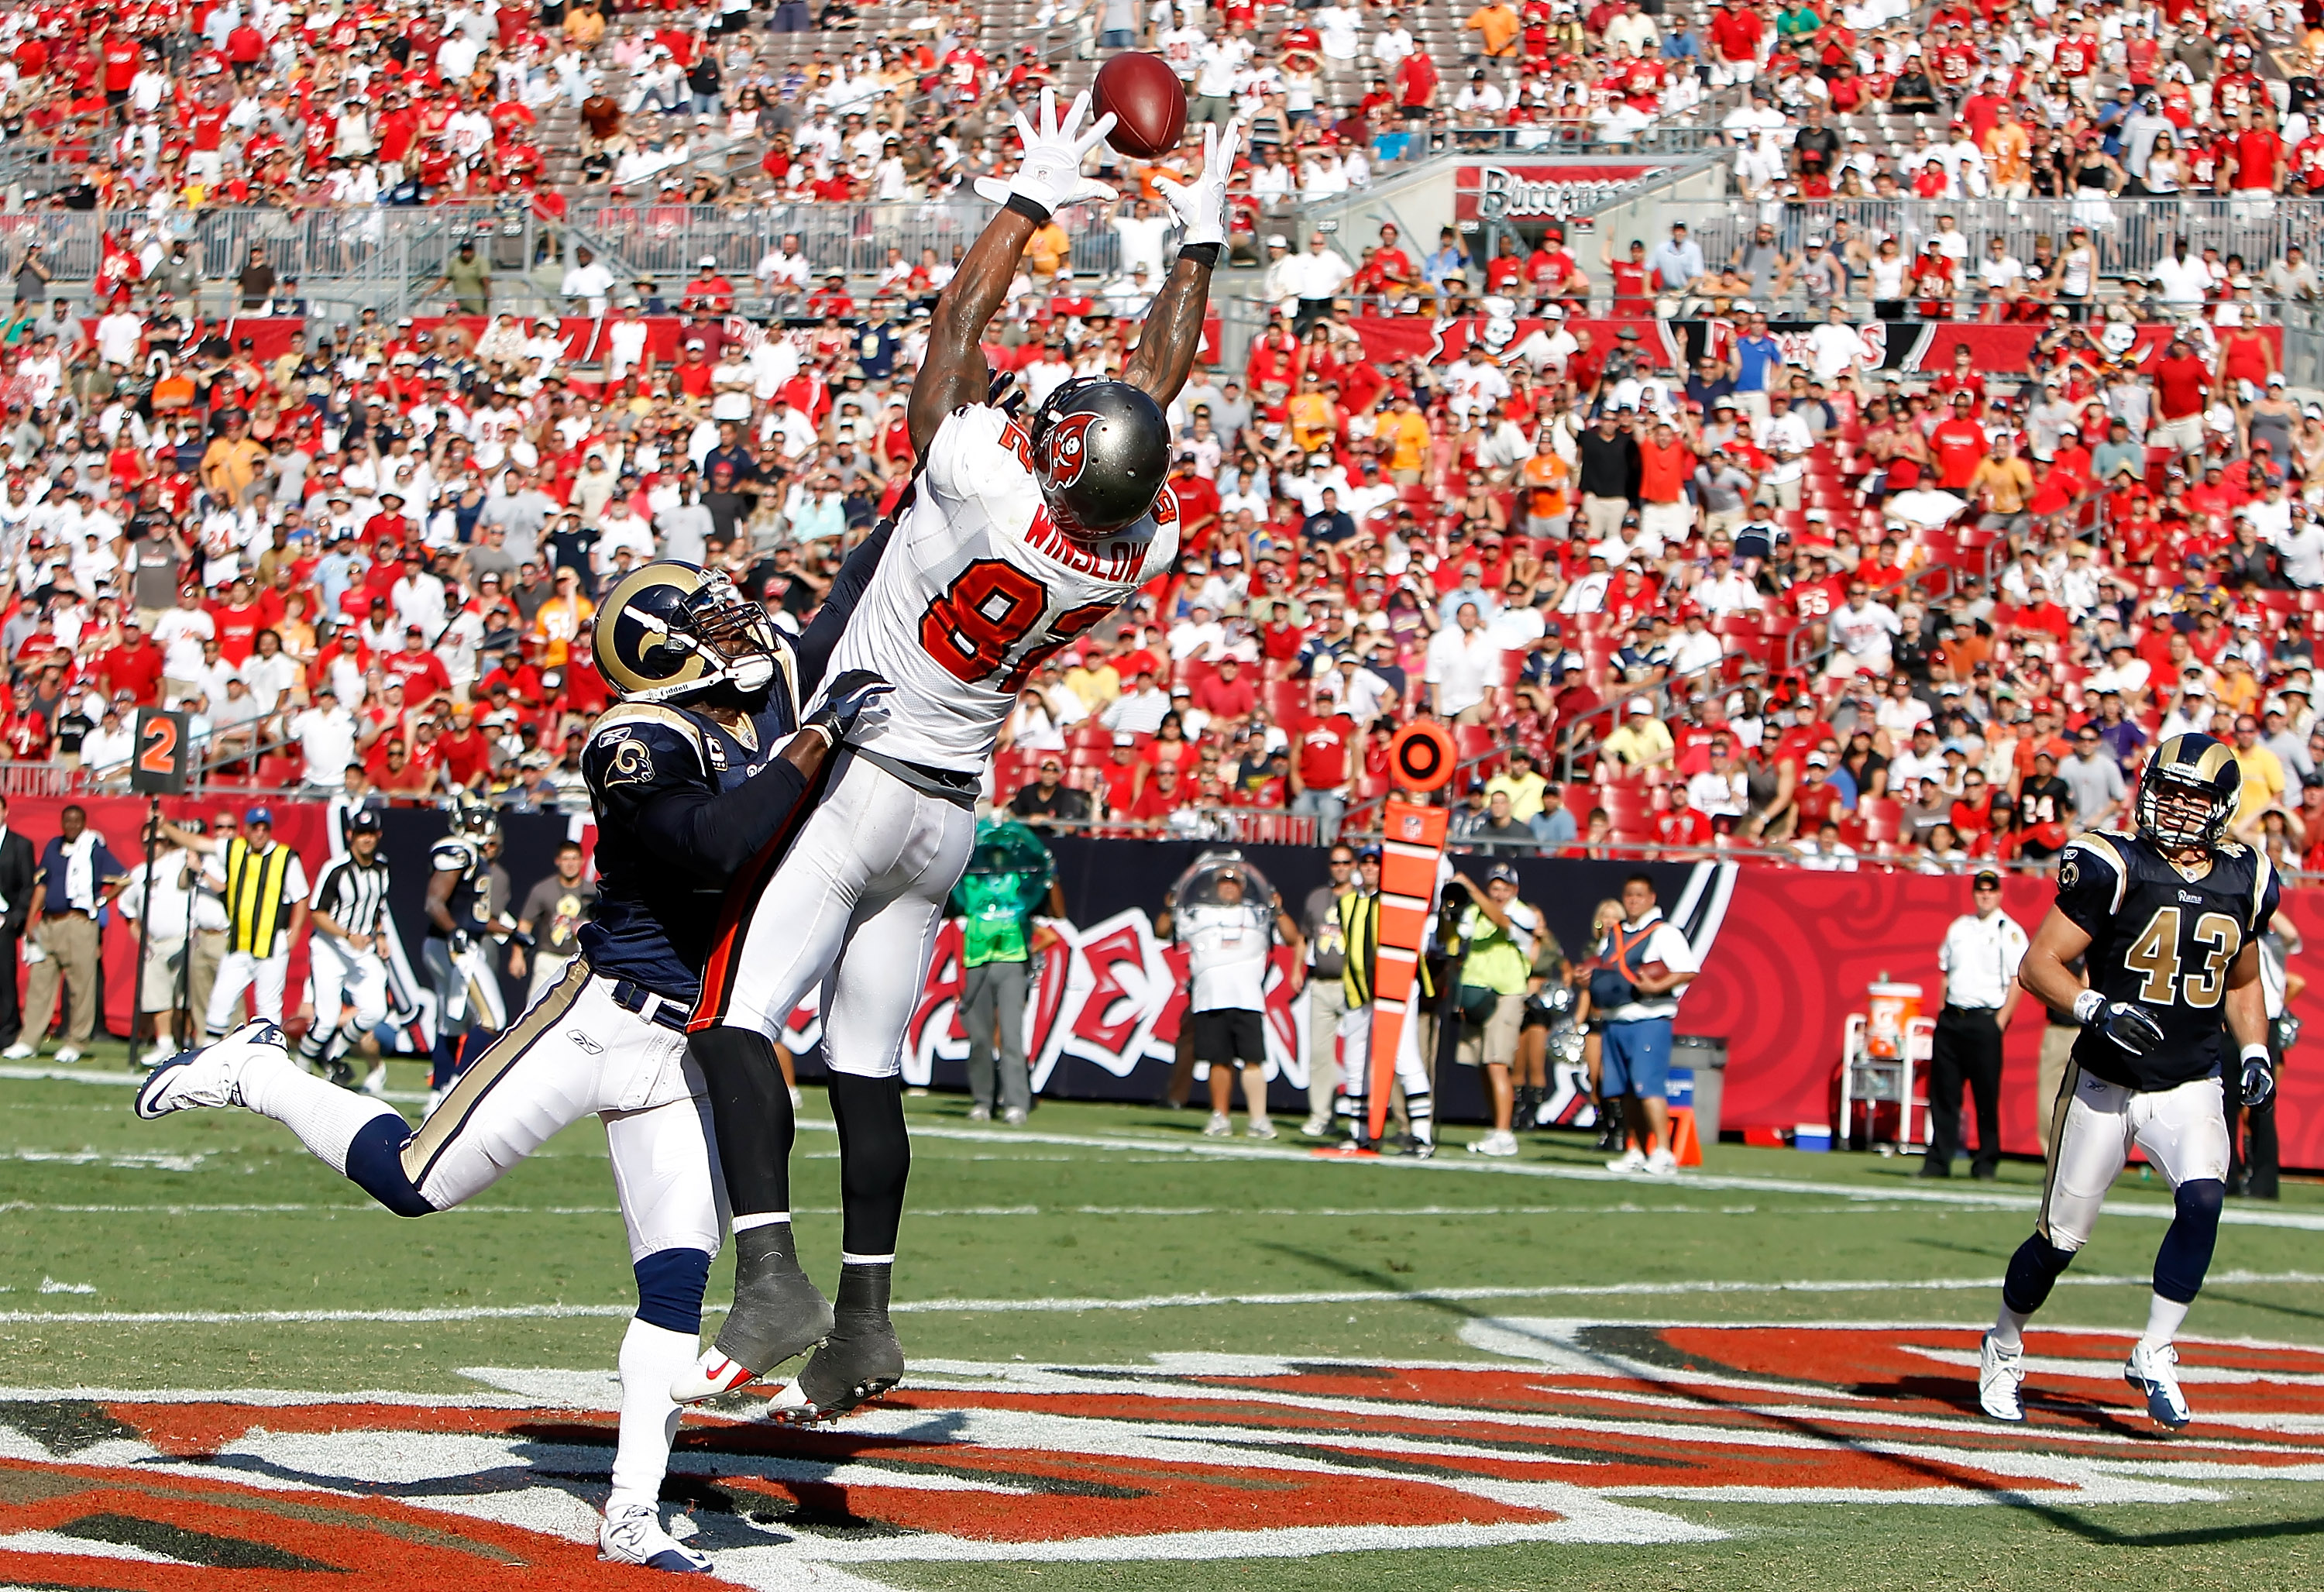 TAMPA, FL - OCTOBER 24:  Tightend Kellen Winslow #82 of the Tampa Bay Buccaneers cannot bring in this pass as safety Oshiomogho Atogwe #21 of the St. Louis Rams breaks it up during the game at Raymond James Stadium on October 24, 2010 in Tampa, Florida.